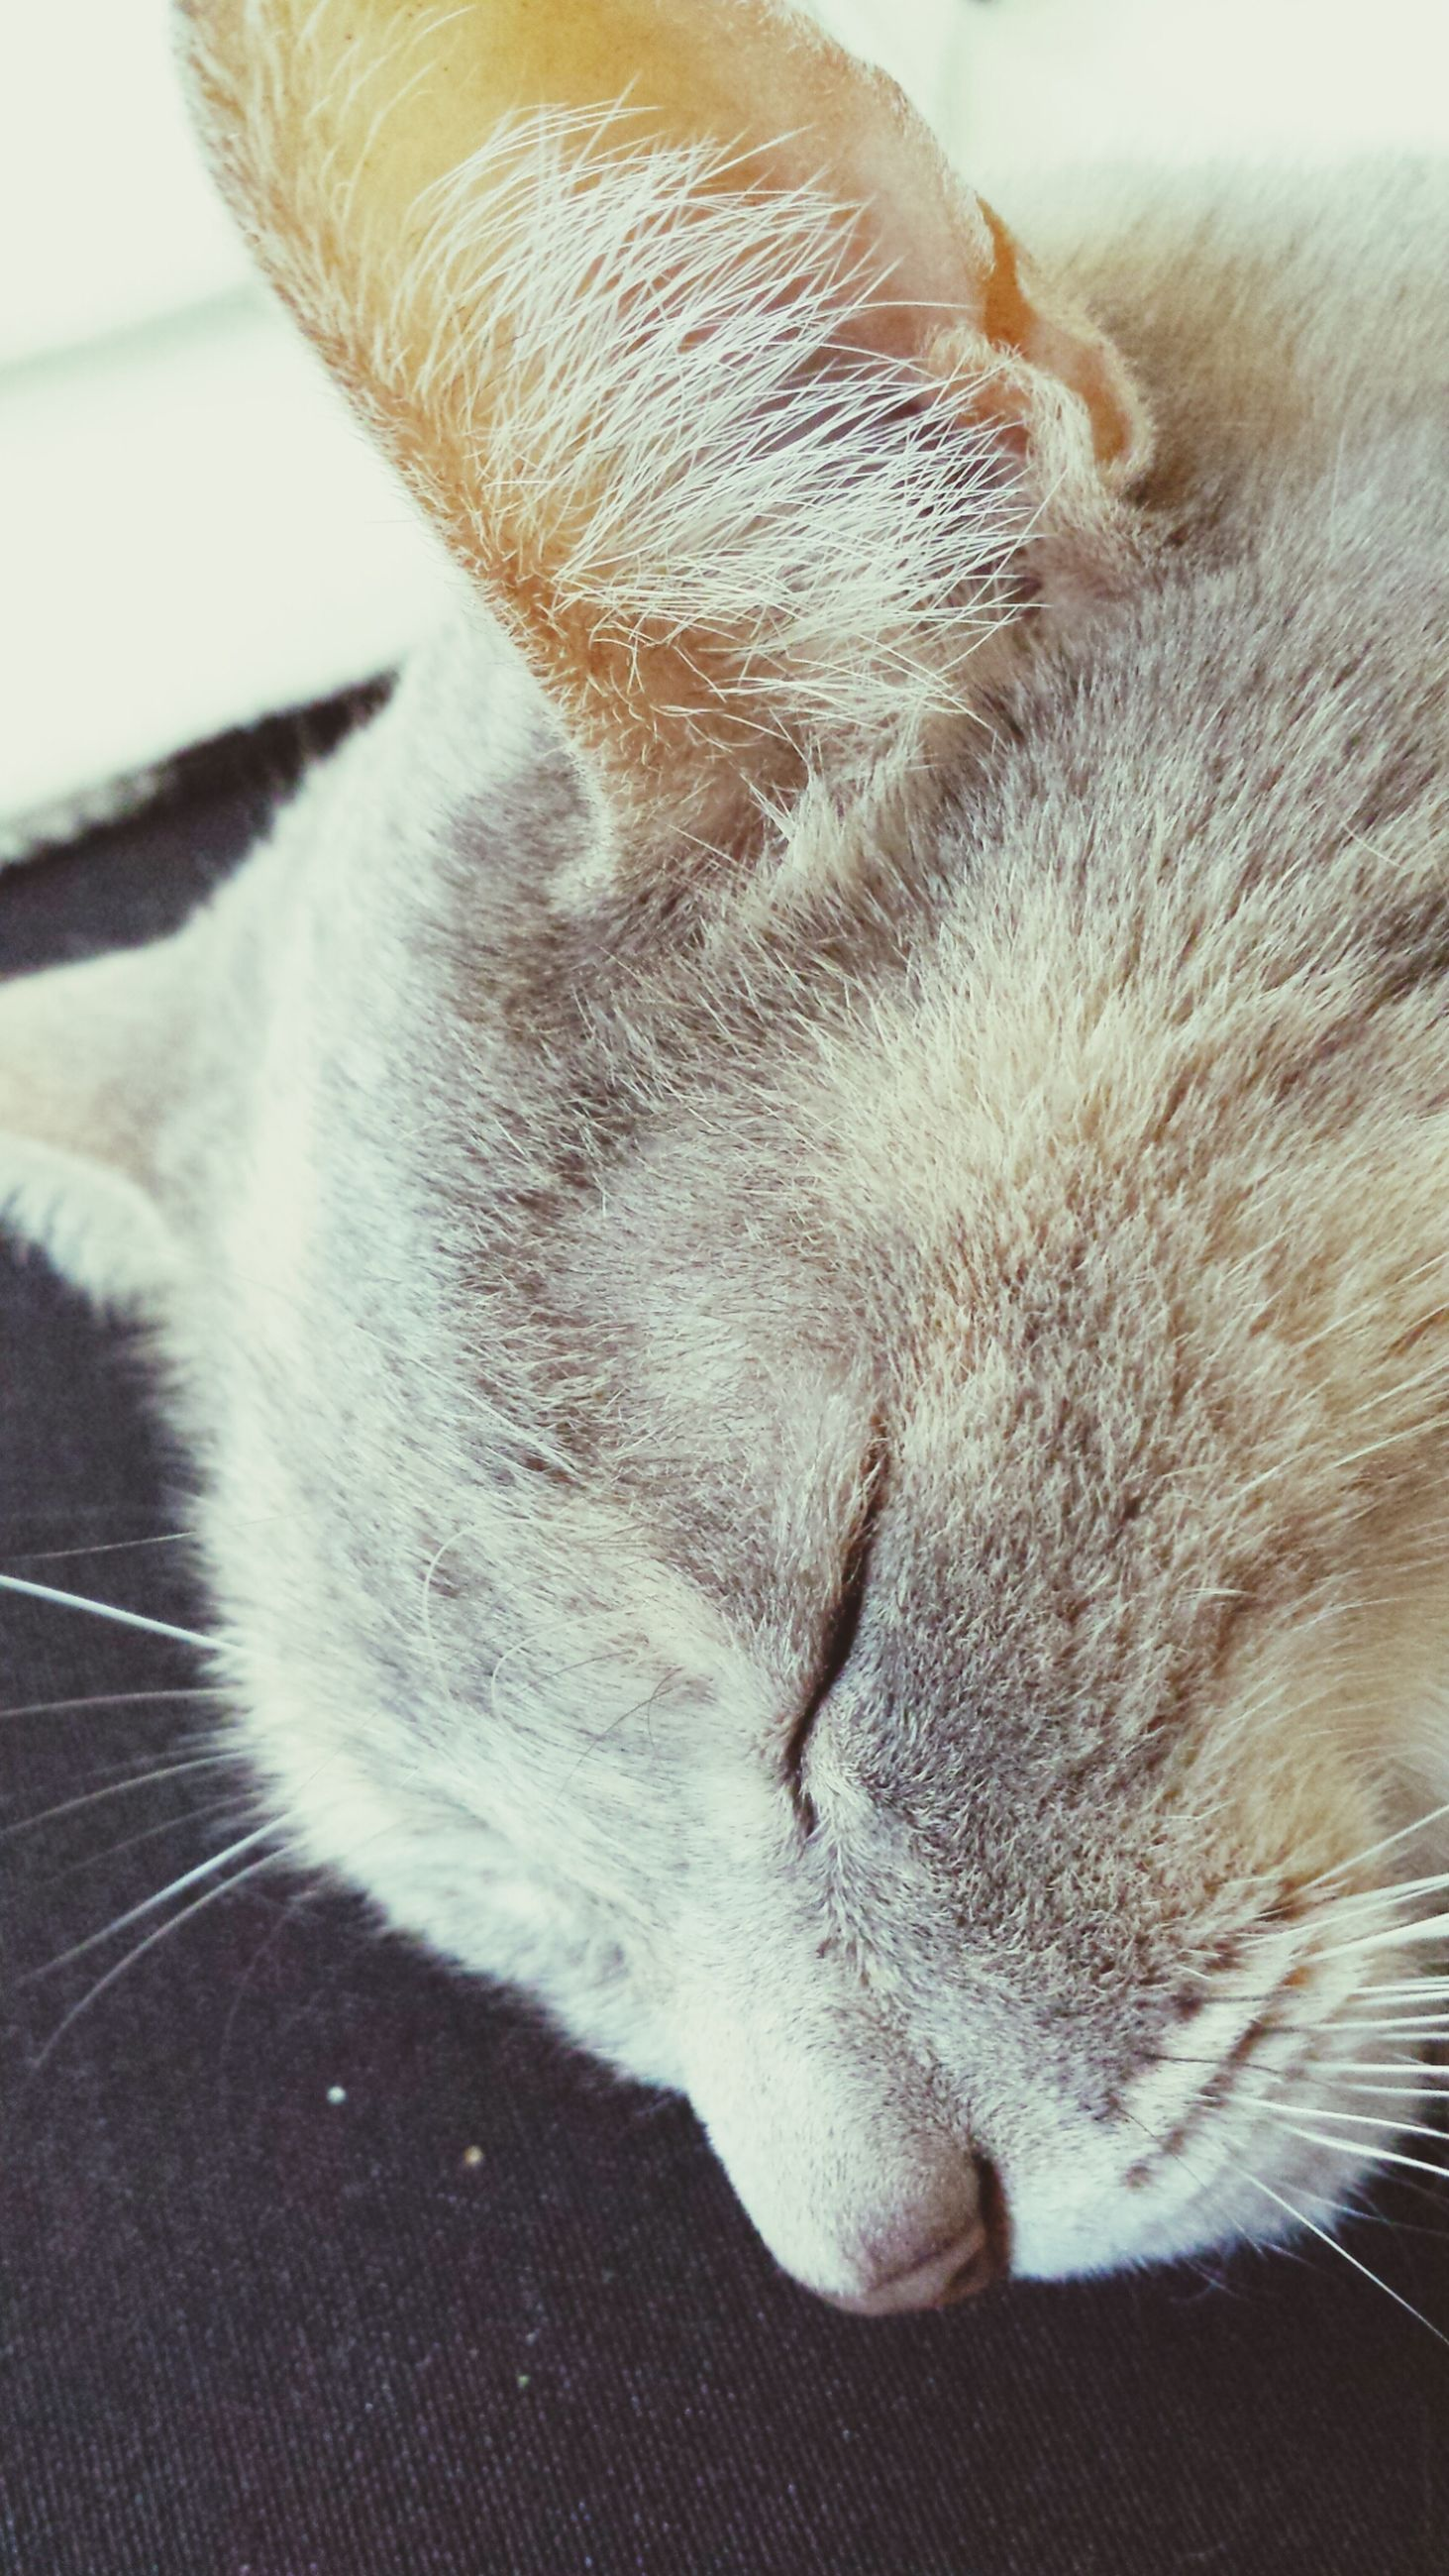 domestic cat, domestic animals, pets, one animal, animal themes, cat, mammal, feline, indoors, whisker, close-up, relaxation, sleeping, animal body part, animal head, resting, lying down, eyes closed, part of, high angle view